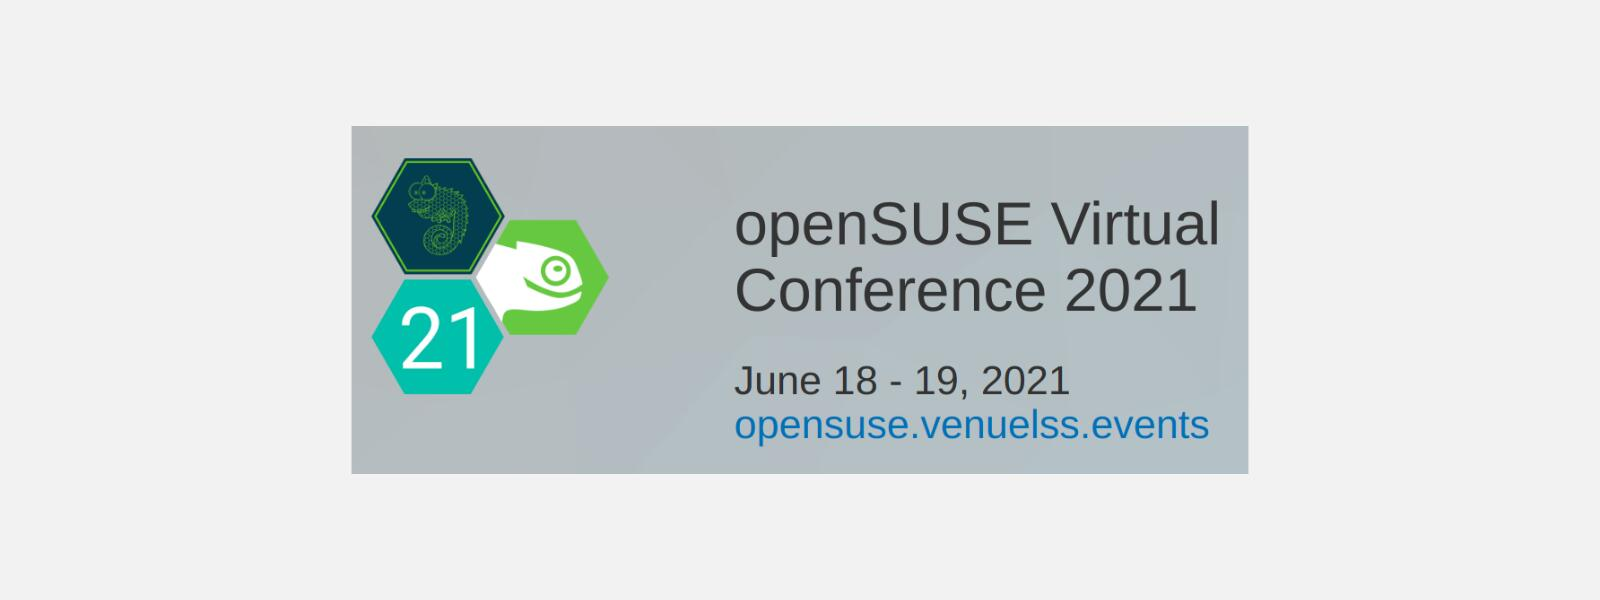 openSUSE Virtual Conference 2021